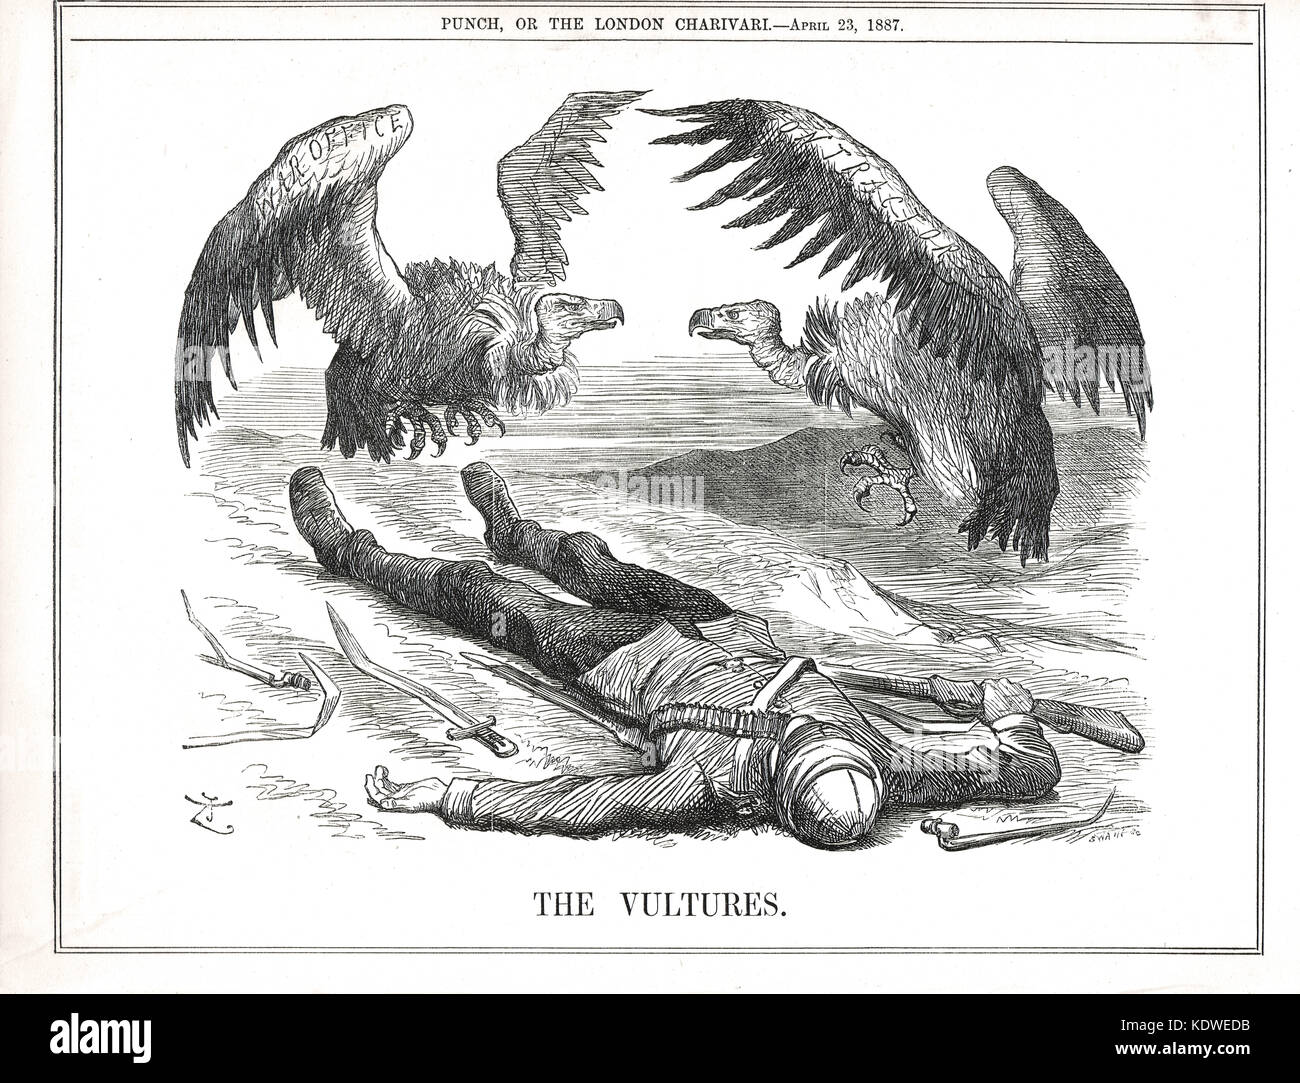 Vultures fighting over the corpse of a dead British soldier. The Vultures, a Punch cartoon of 1887 - Stock Image